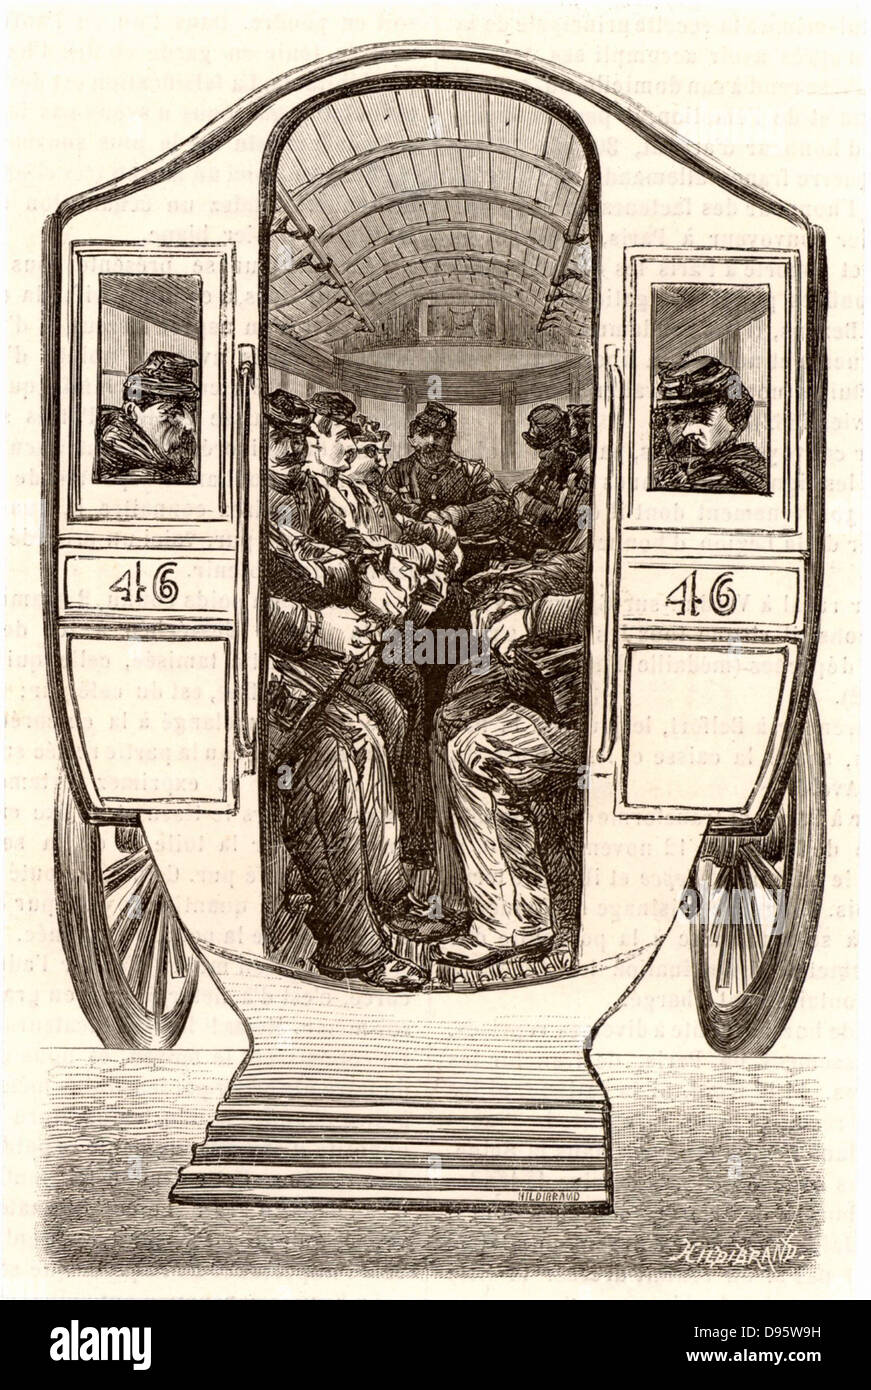 French postal service. Paris postmen being transported by horse bus to the beginning of their rounds. Engraving - Stock Image